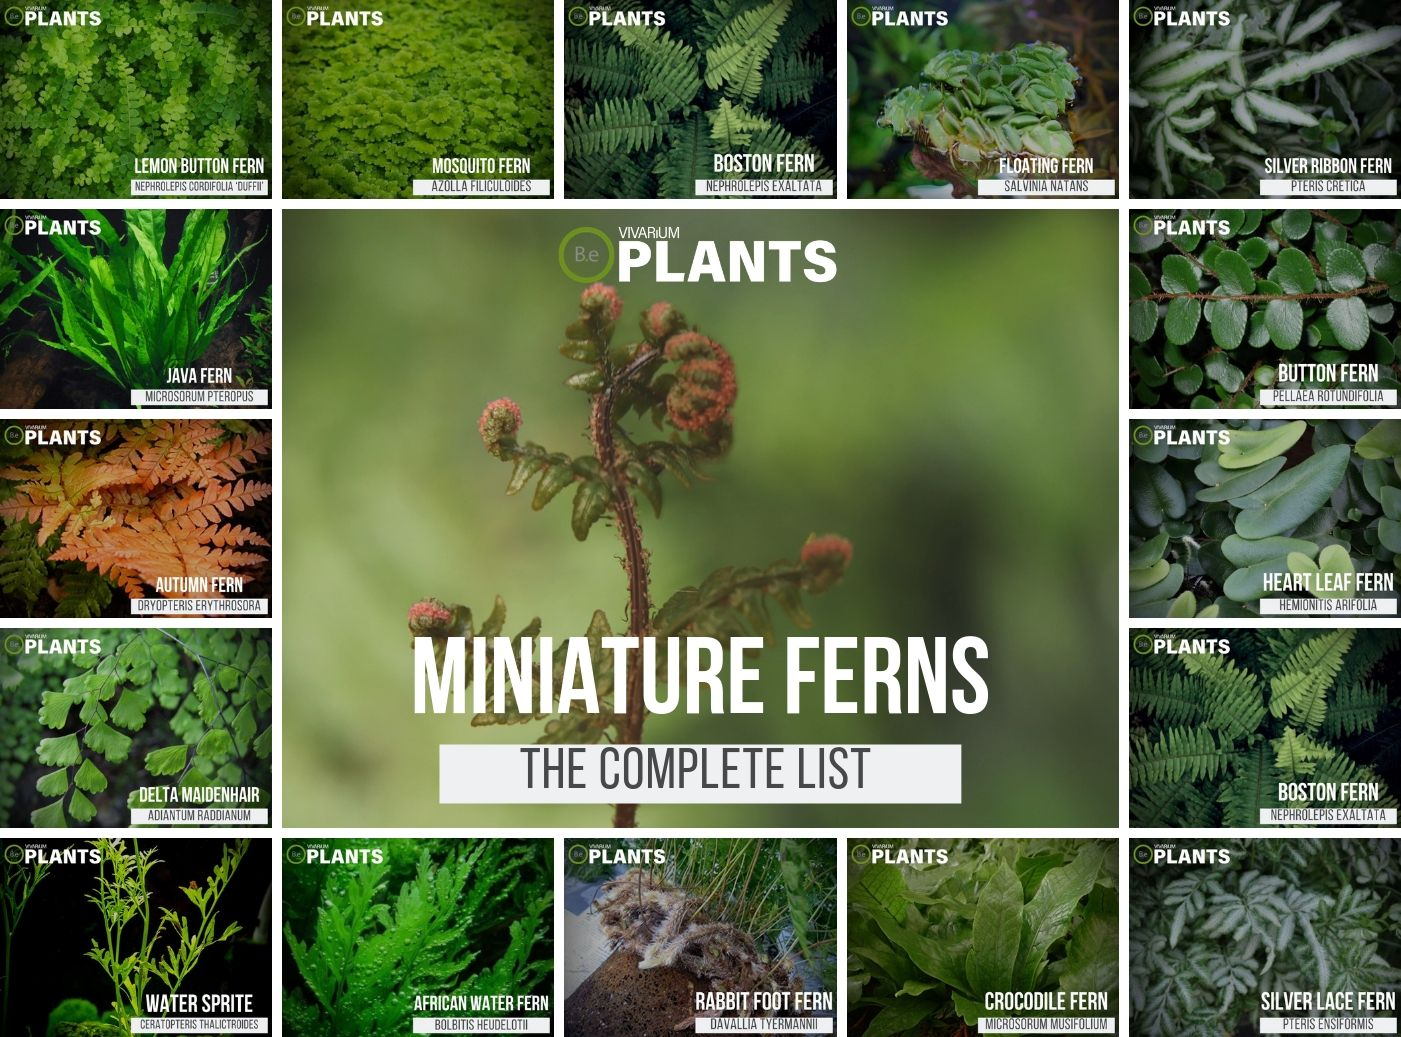 Types of miniature fern